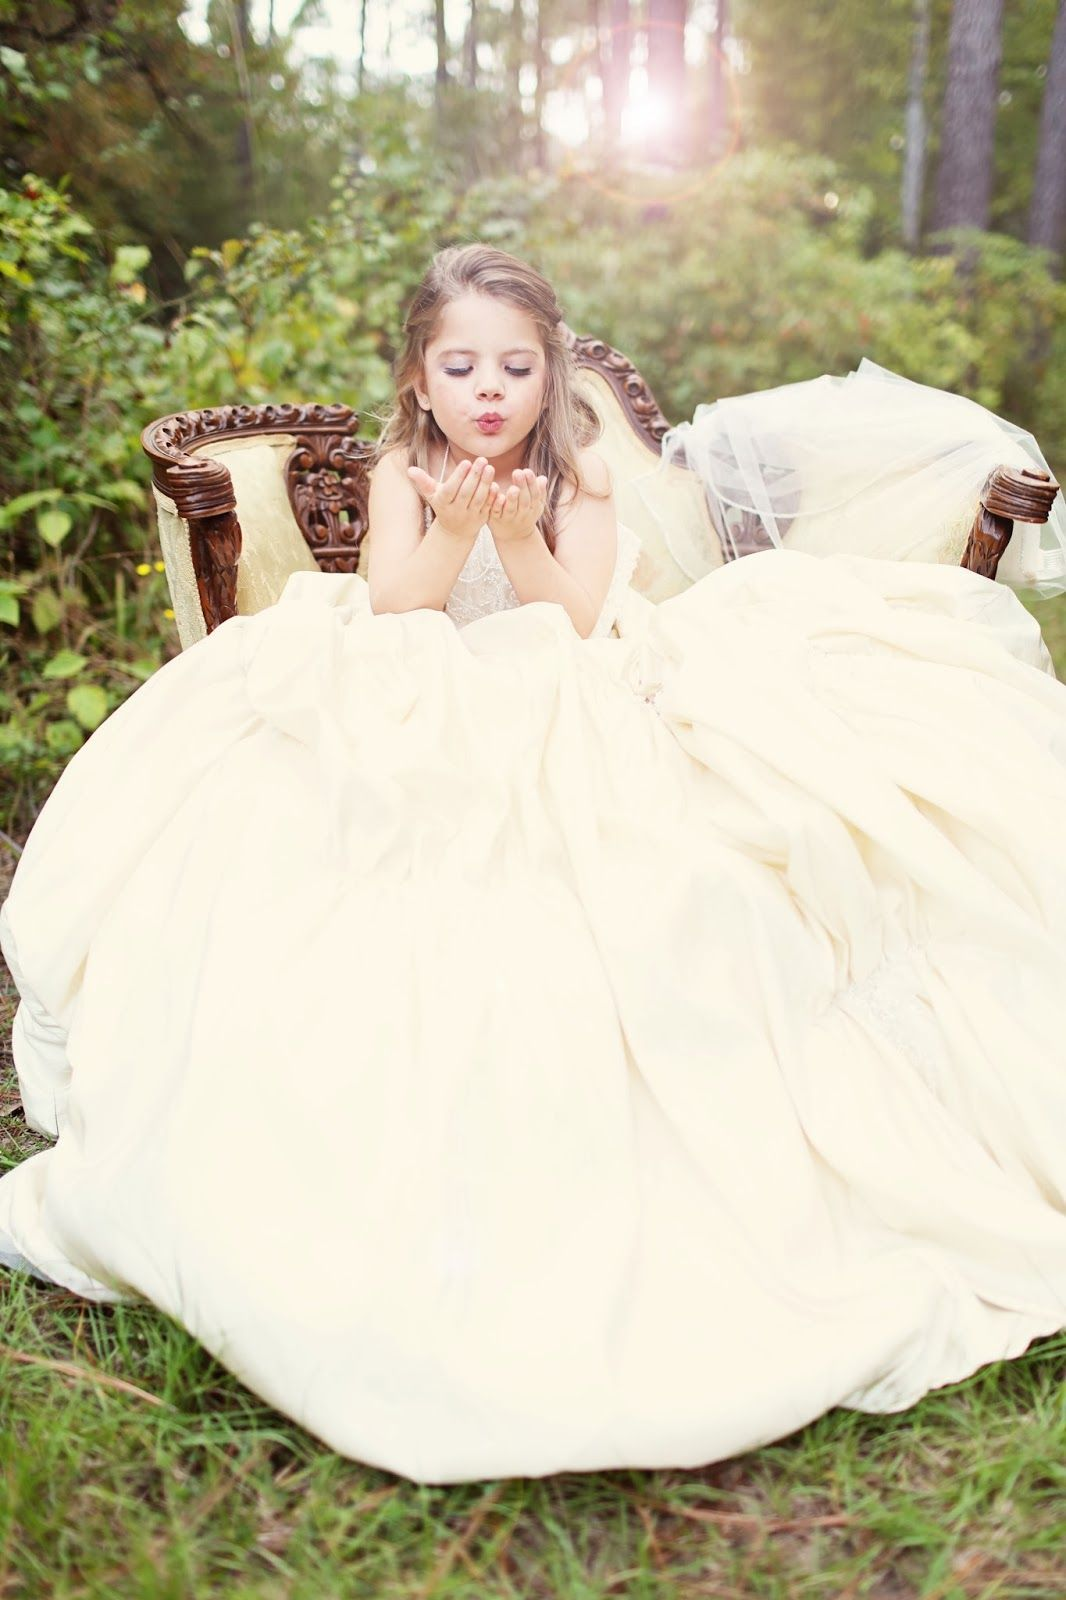 Take a picture of your daughter in your wedding dress child